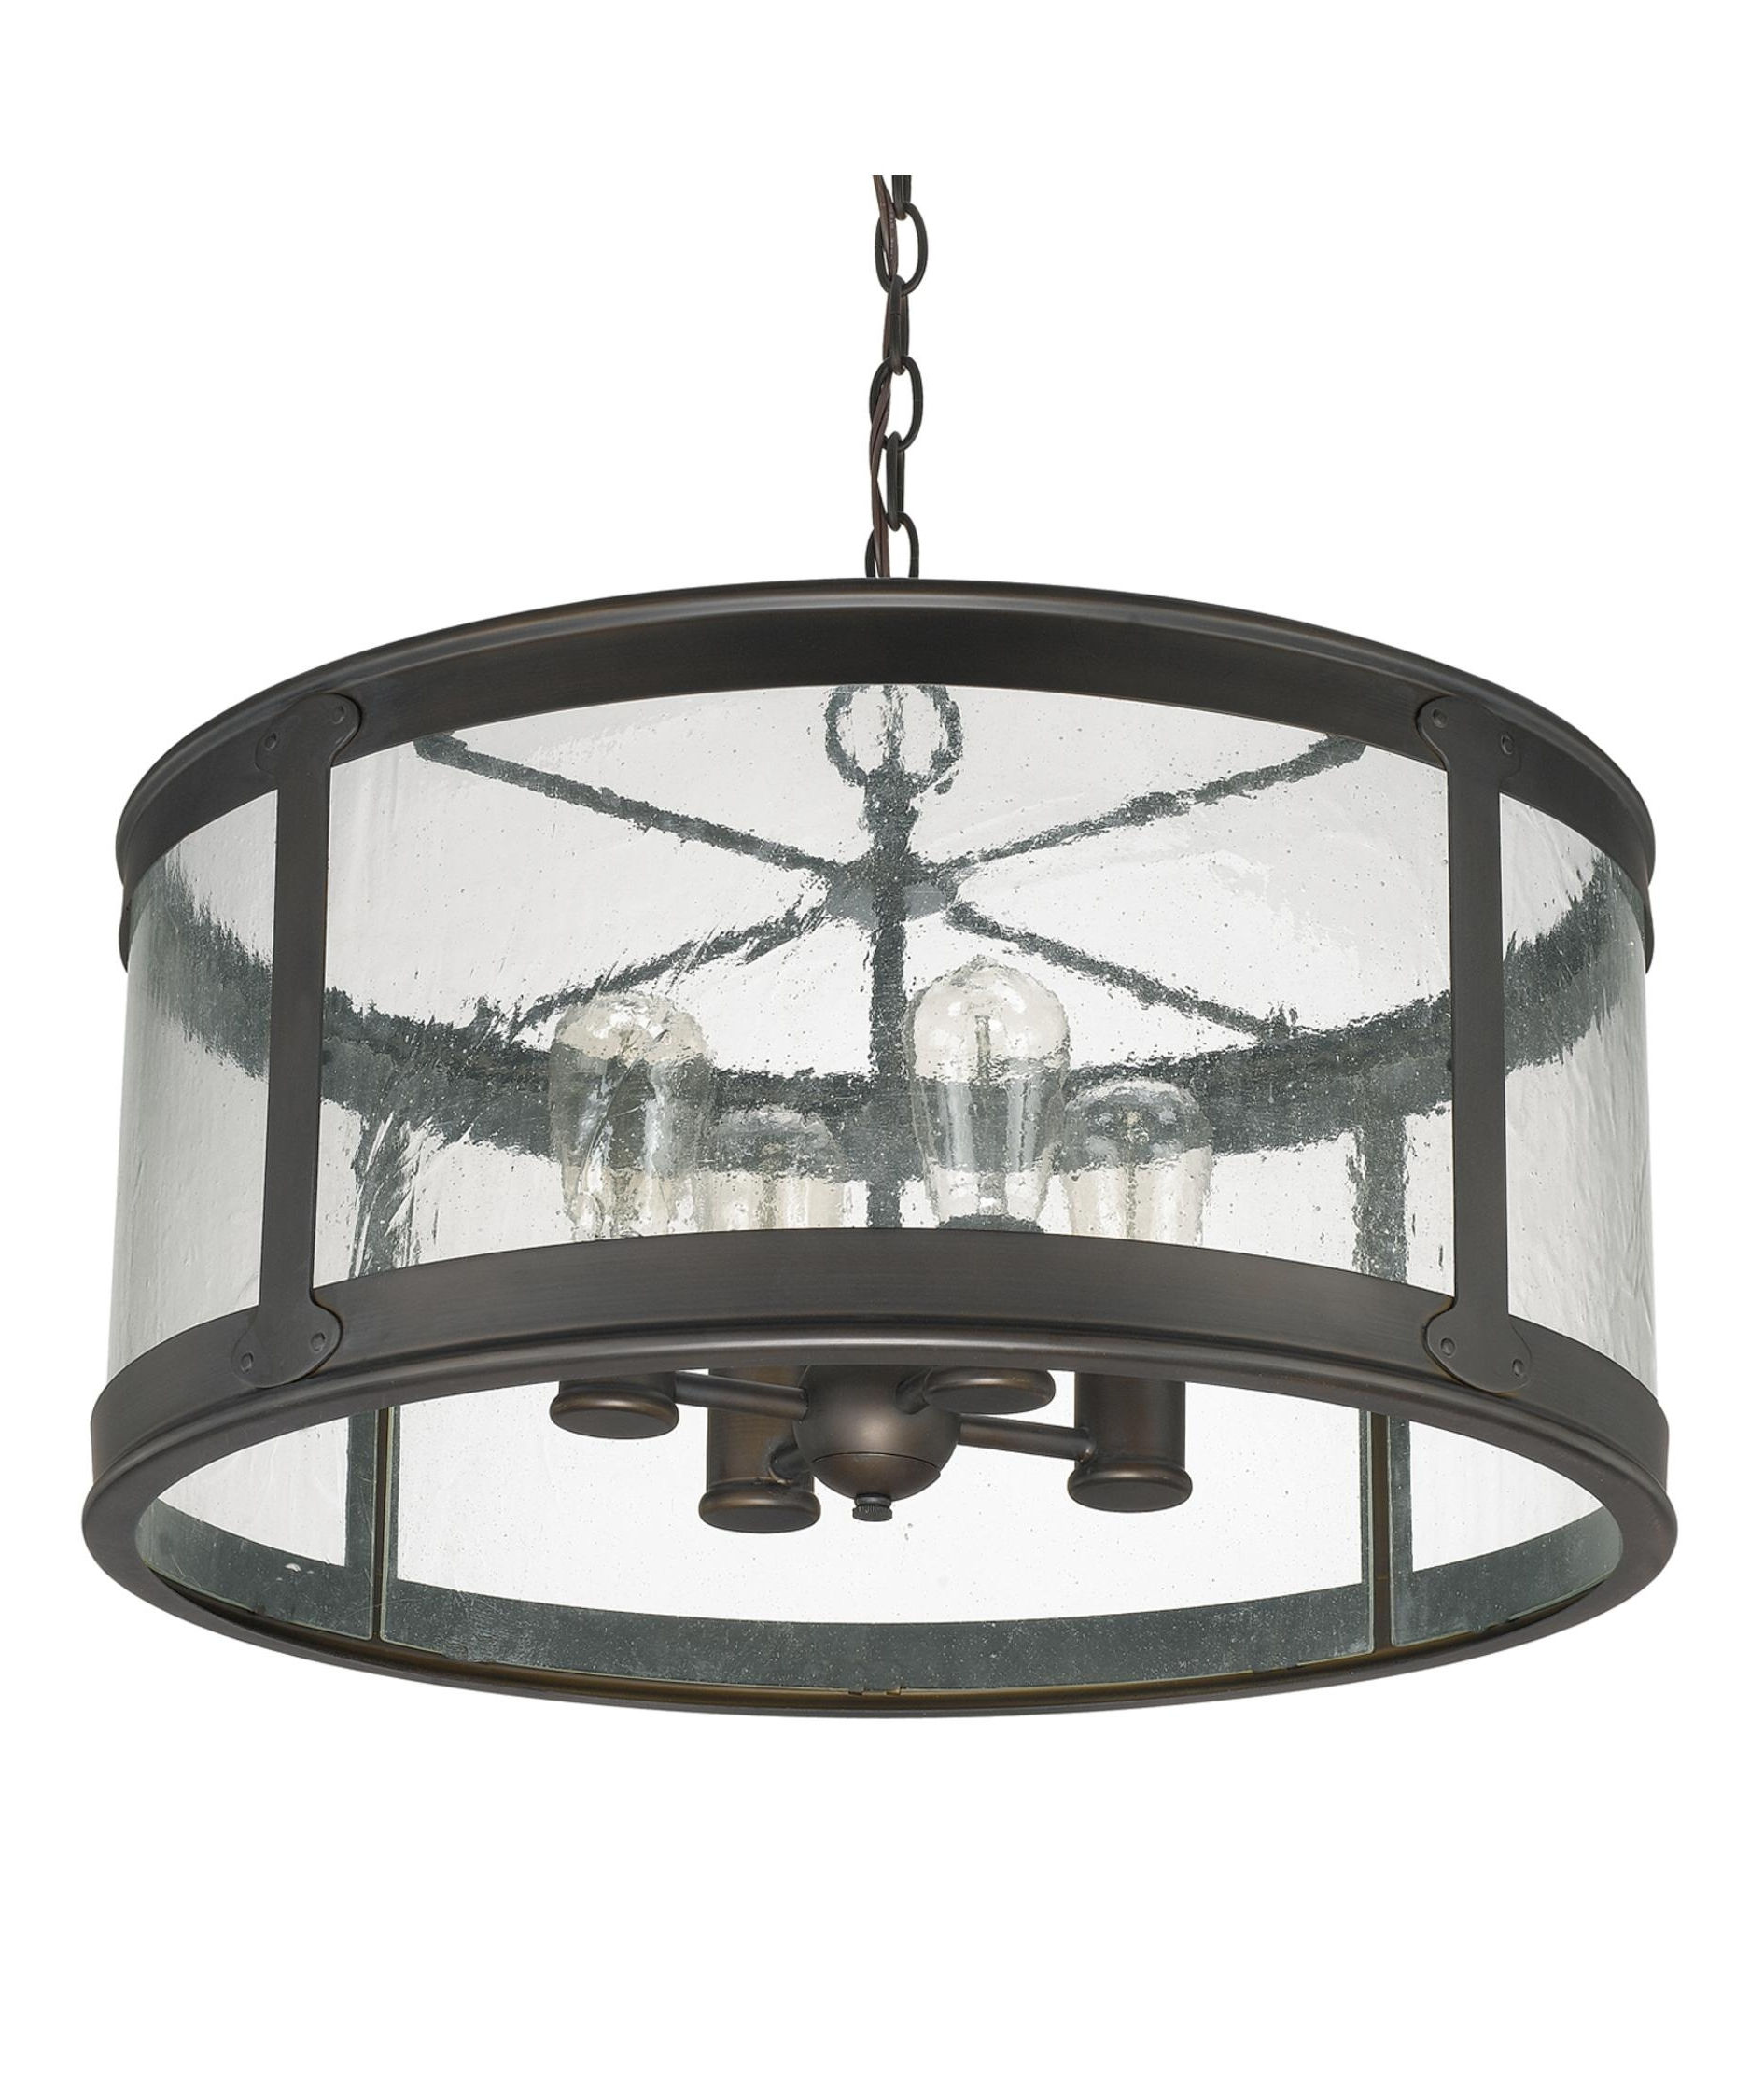 2019 Large Outdoor Hanging Pendant Lights Inside Capital Lighting 9568 Dylan 22 Inch Wide 4 Light Large Pendant (View 11 of 20)